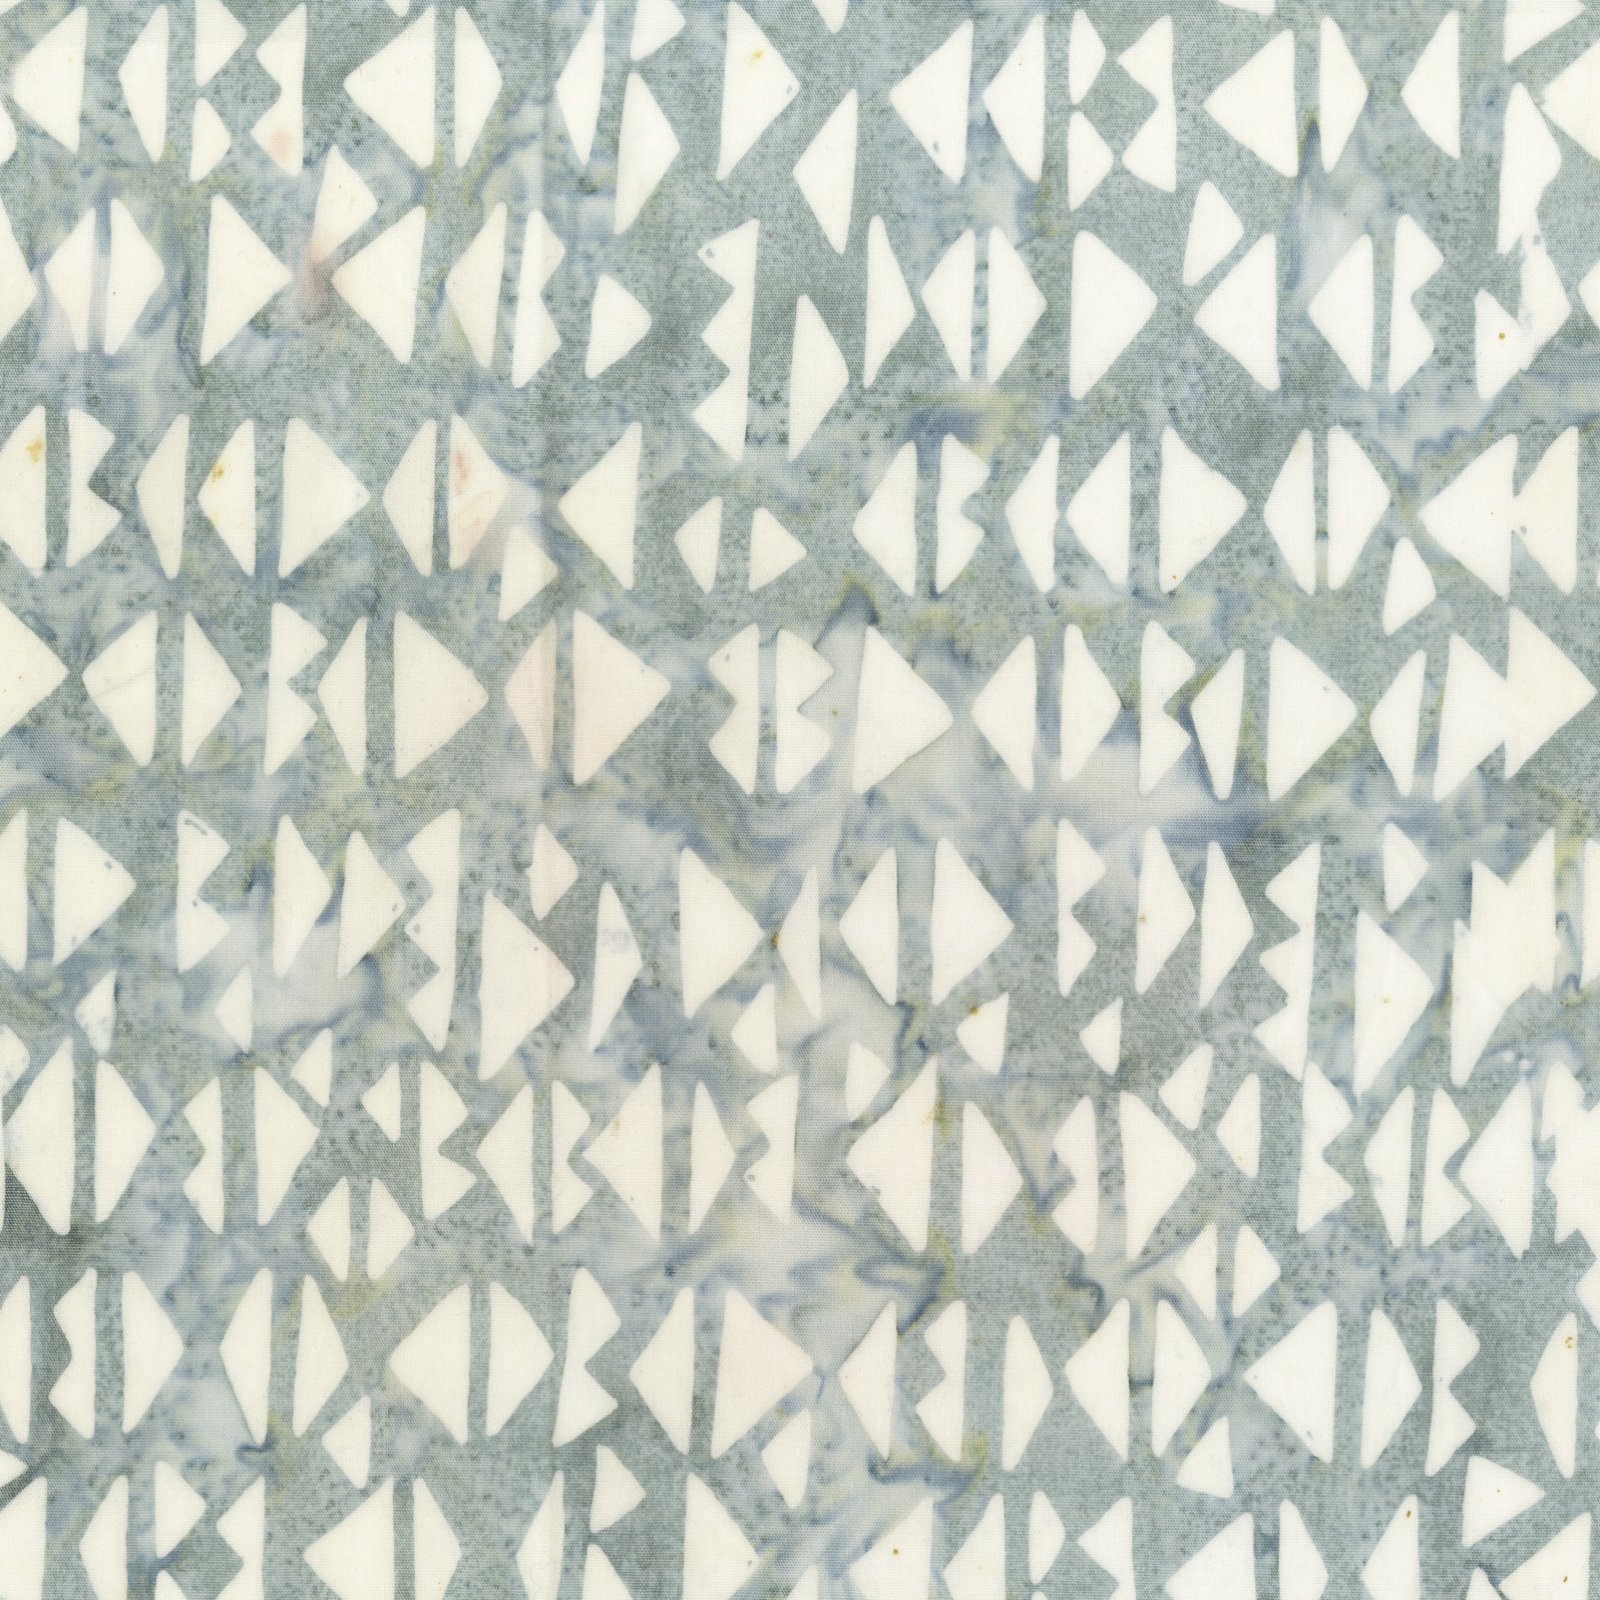 706Q-5 Island Home by Natalie Barnes of Beyond the Reef for Anthology Fabrics